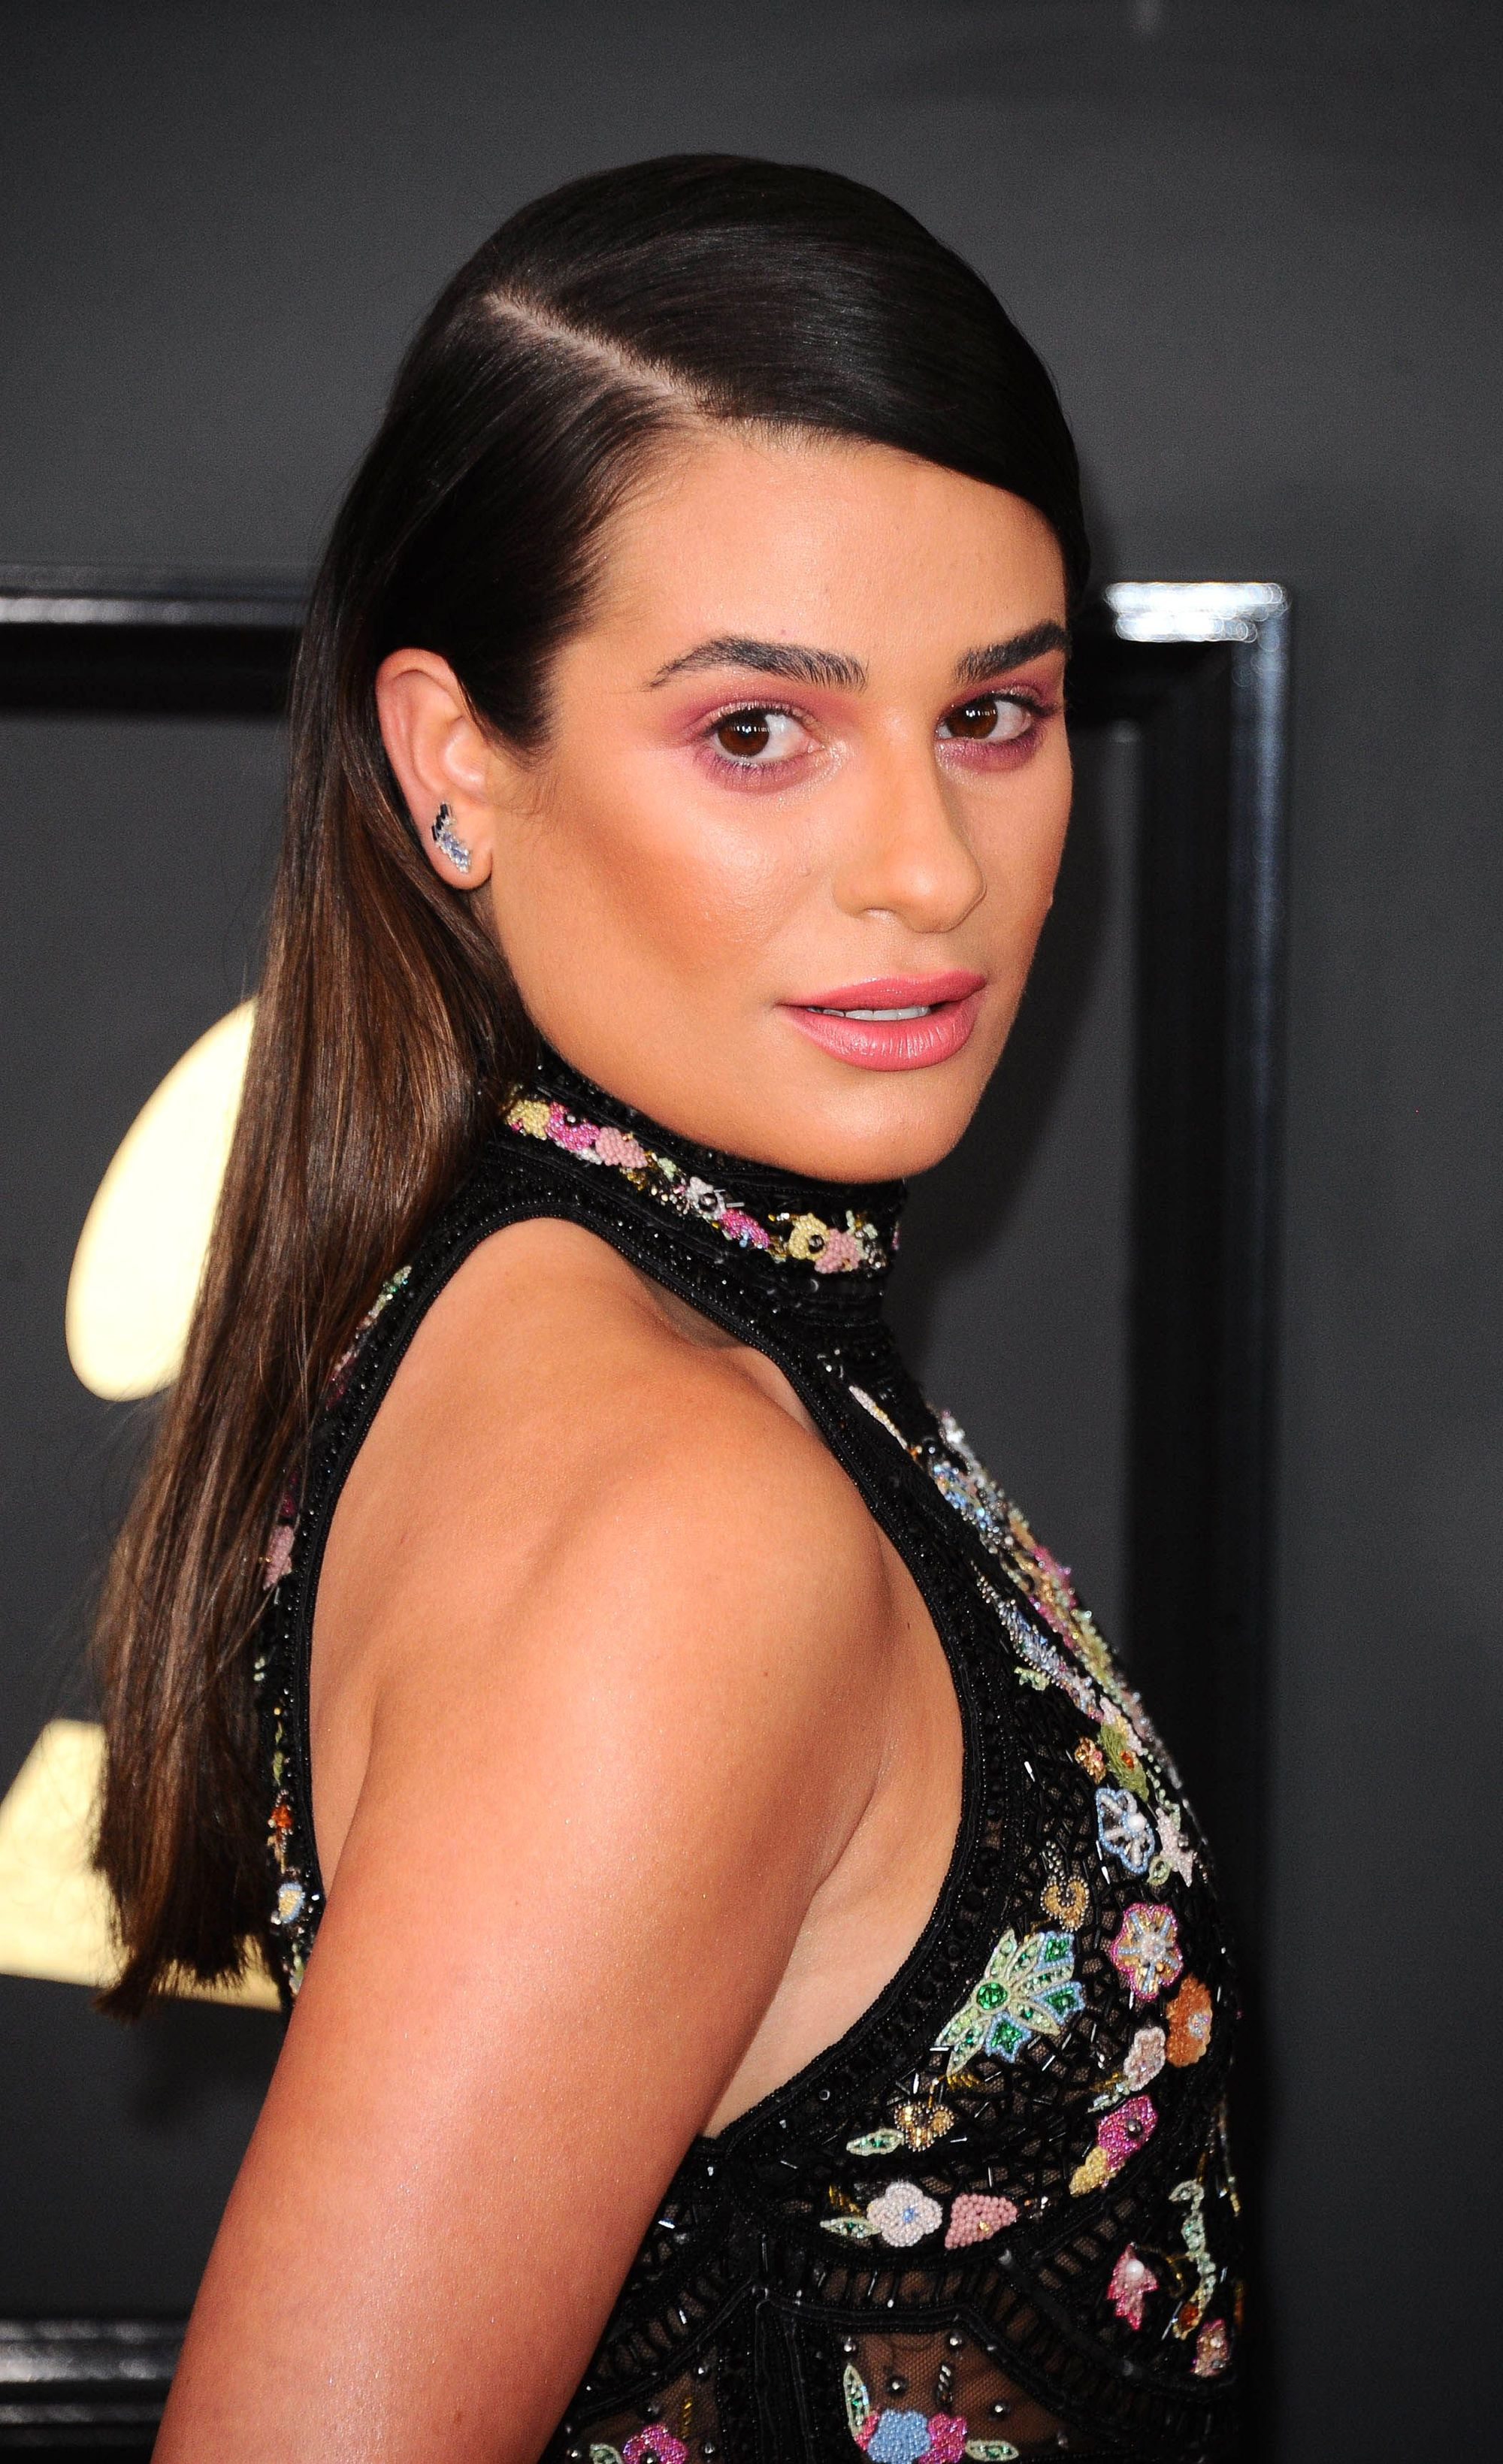 Lea Michele wearing floral halterneck black dress with her hair in a sleek side parting